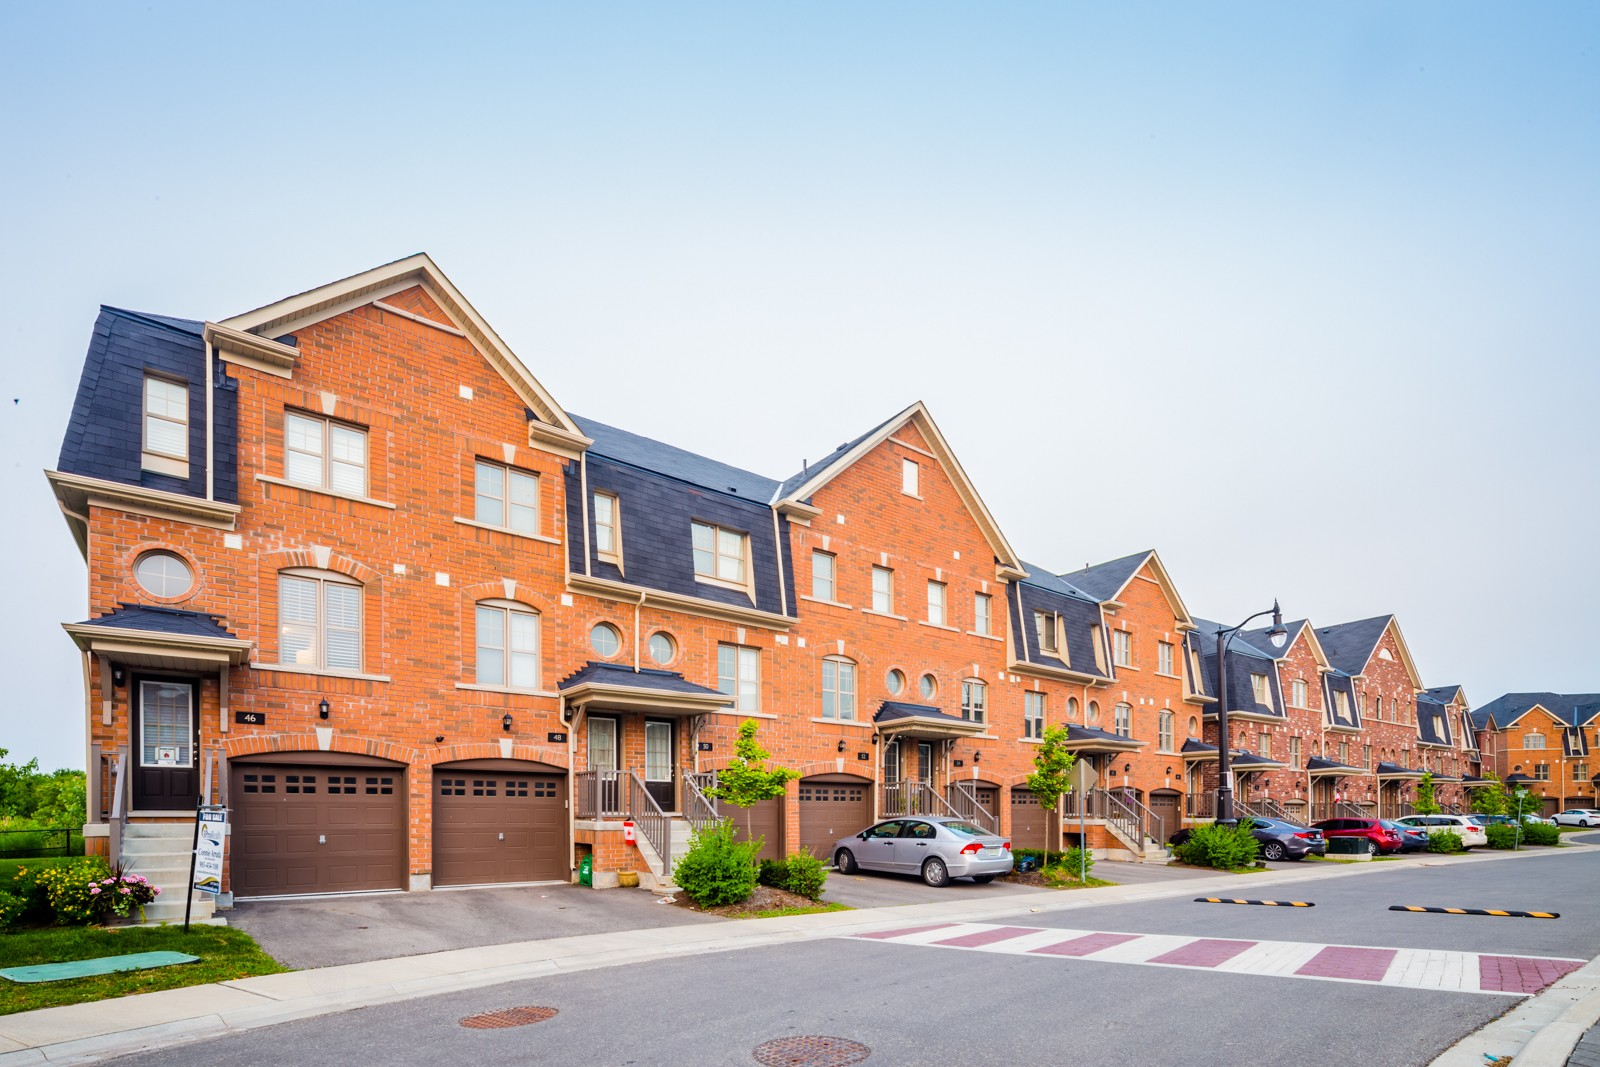 46 Soldier St Townhouses at 46 Soldier Street, Brampton 0